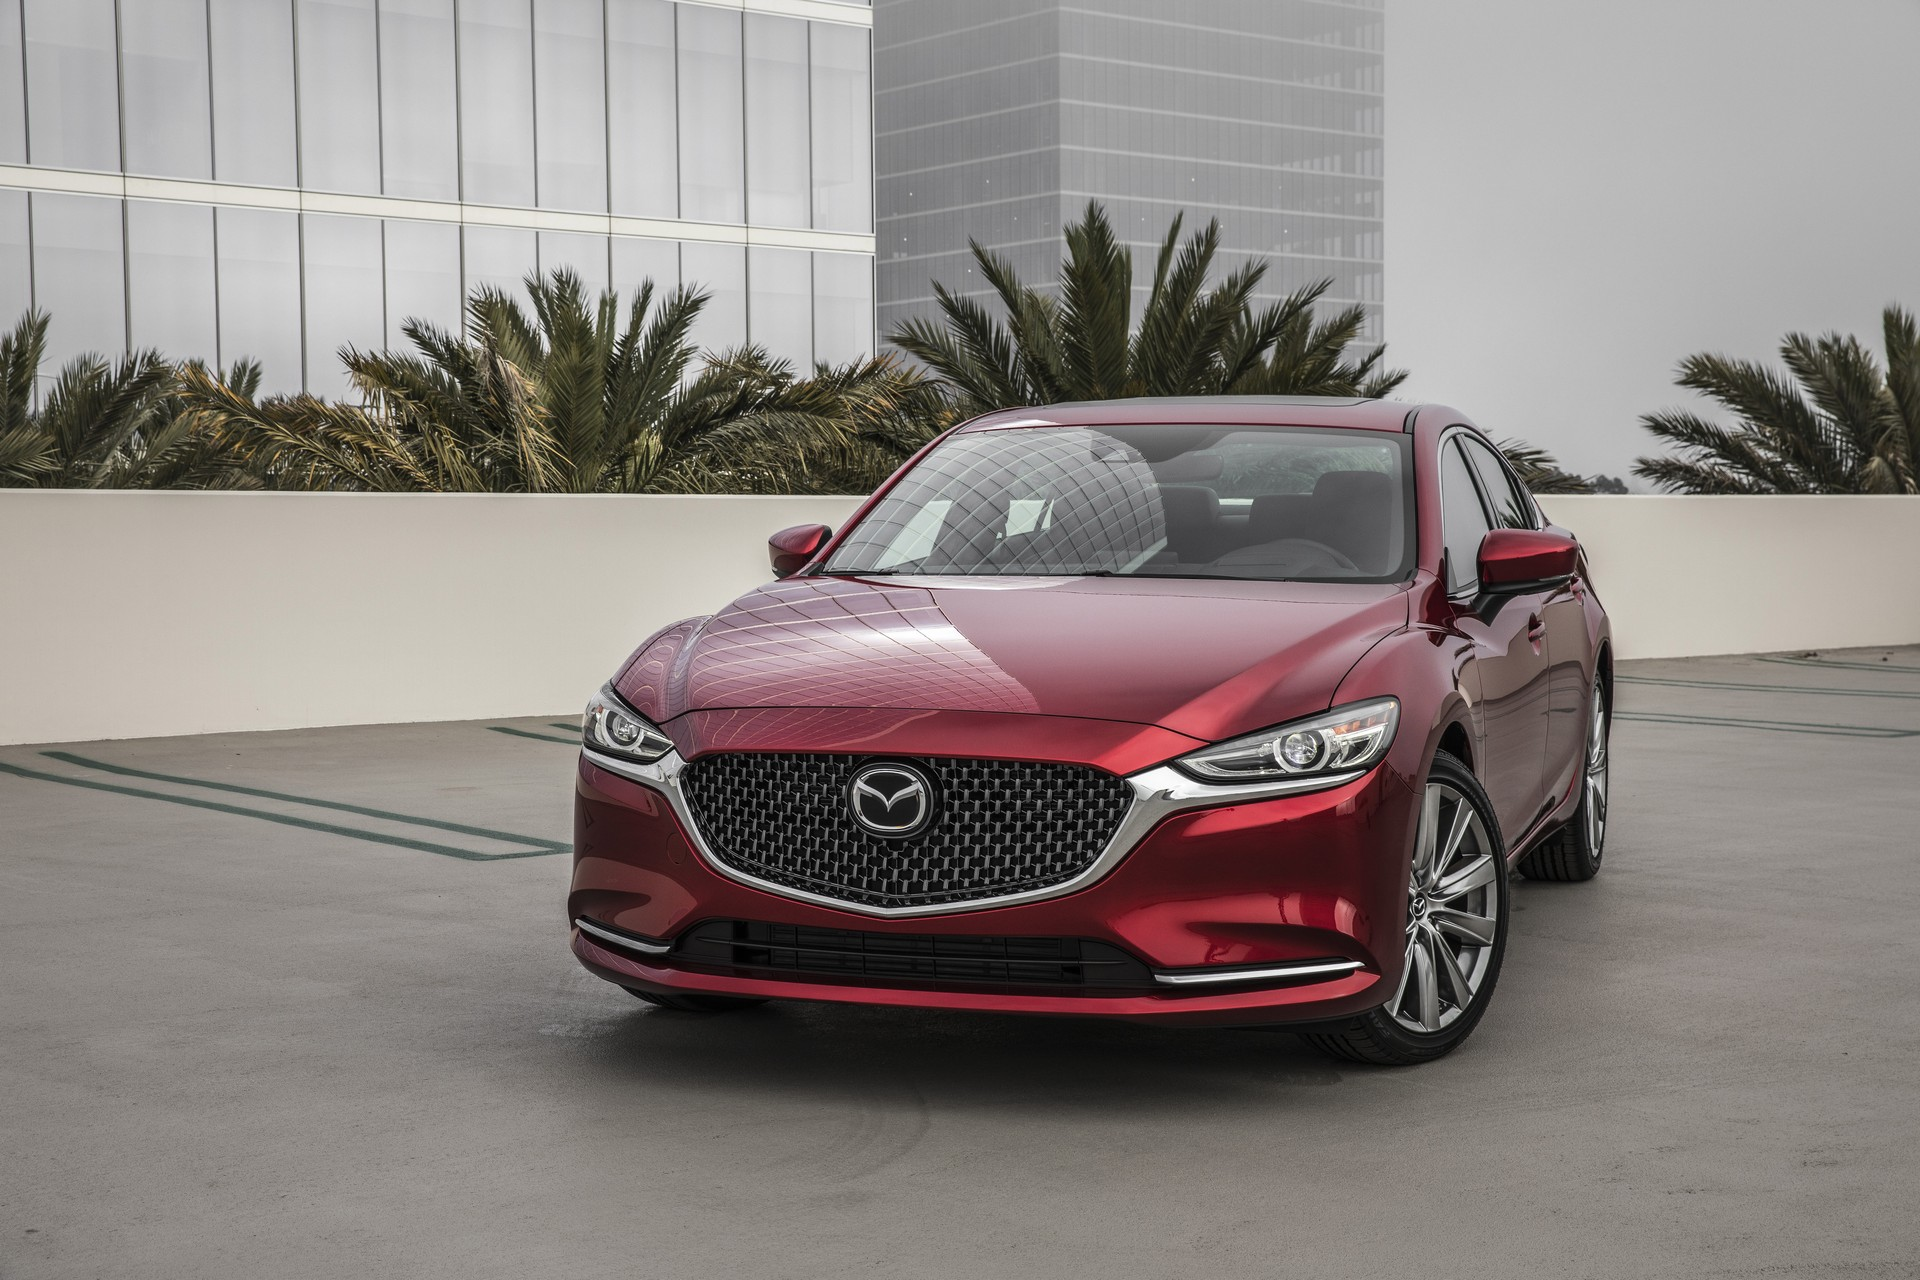 besides the upgraded engine the mazda6 grand touring has beefier brakes an auto dimming rearview mirror and steering wheel mounted paddle shifters